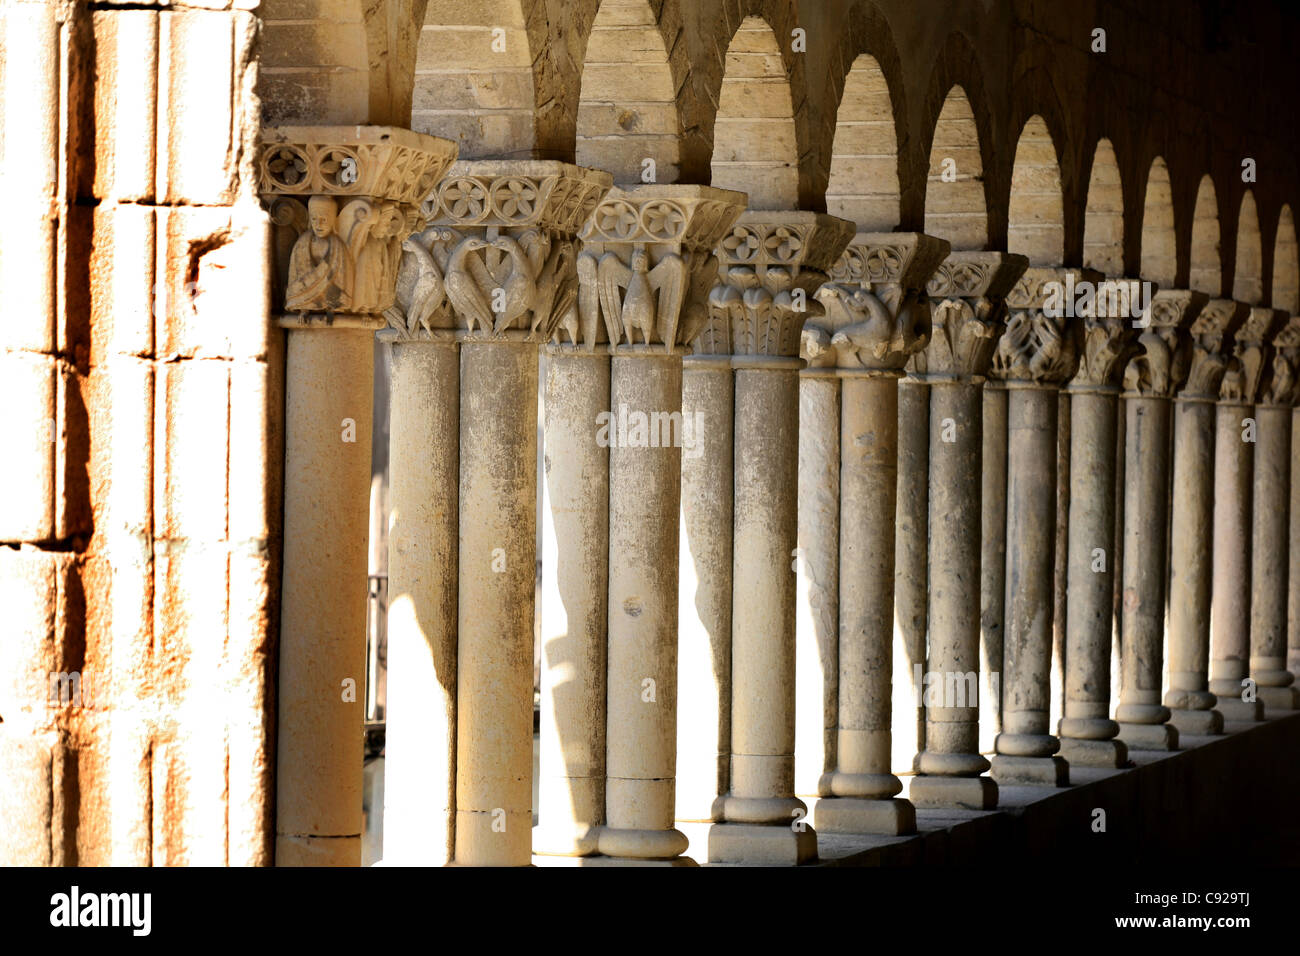 The Church of San Martin is a historic Romanesque church in Segovia. - Stock Image